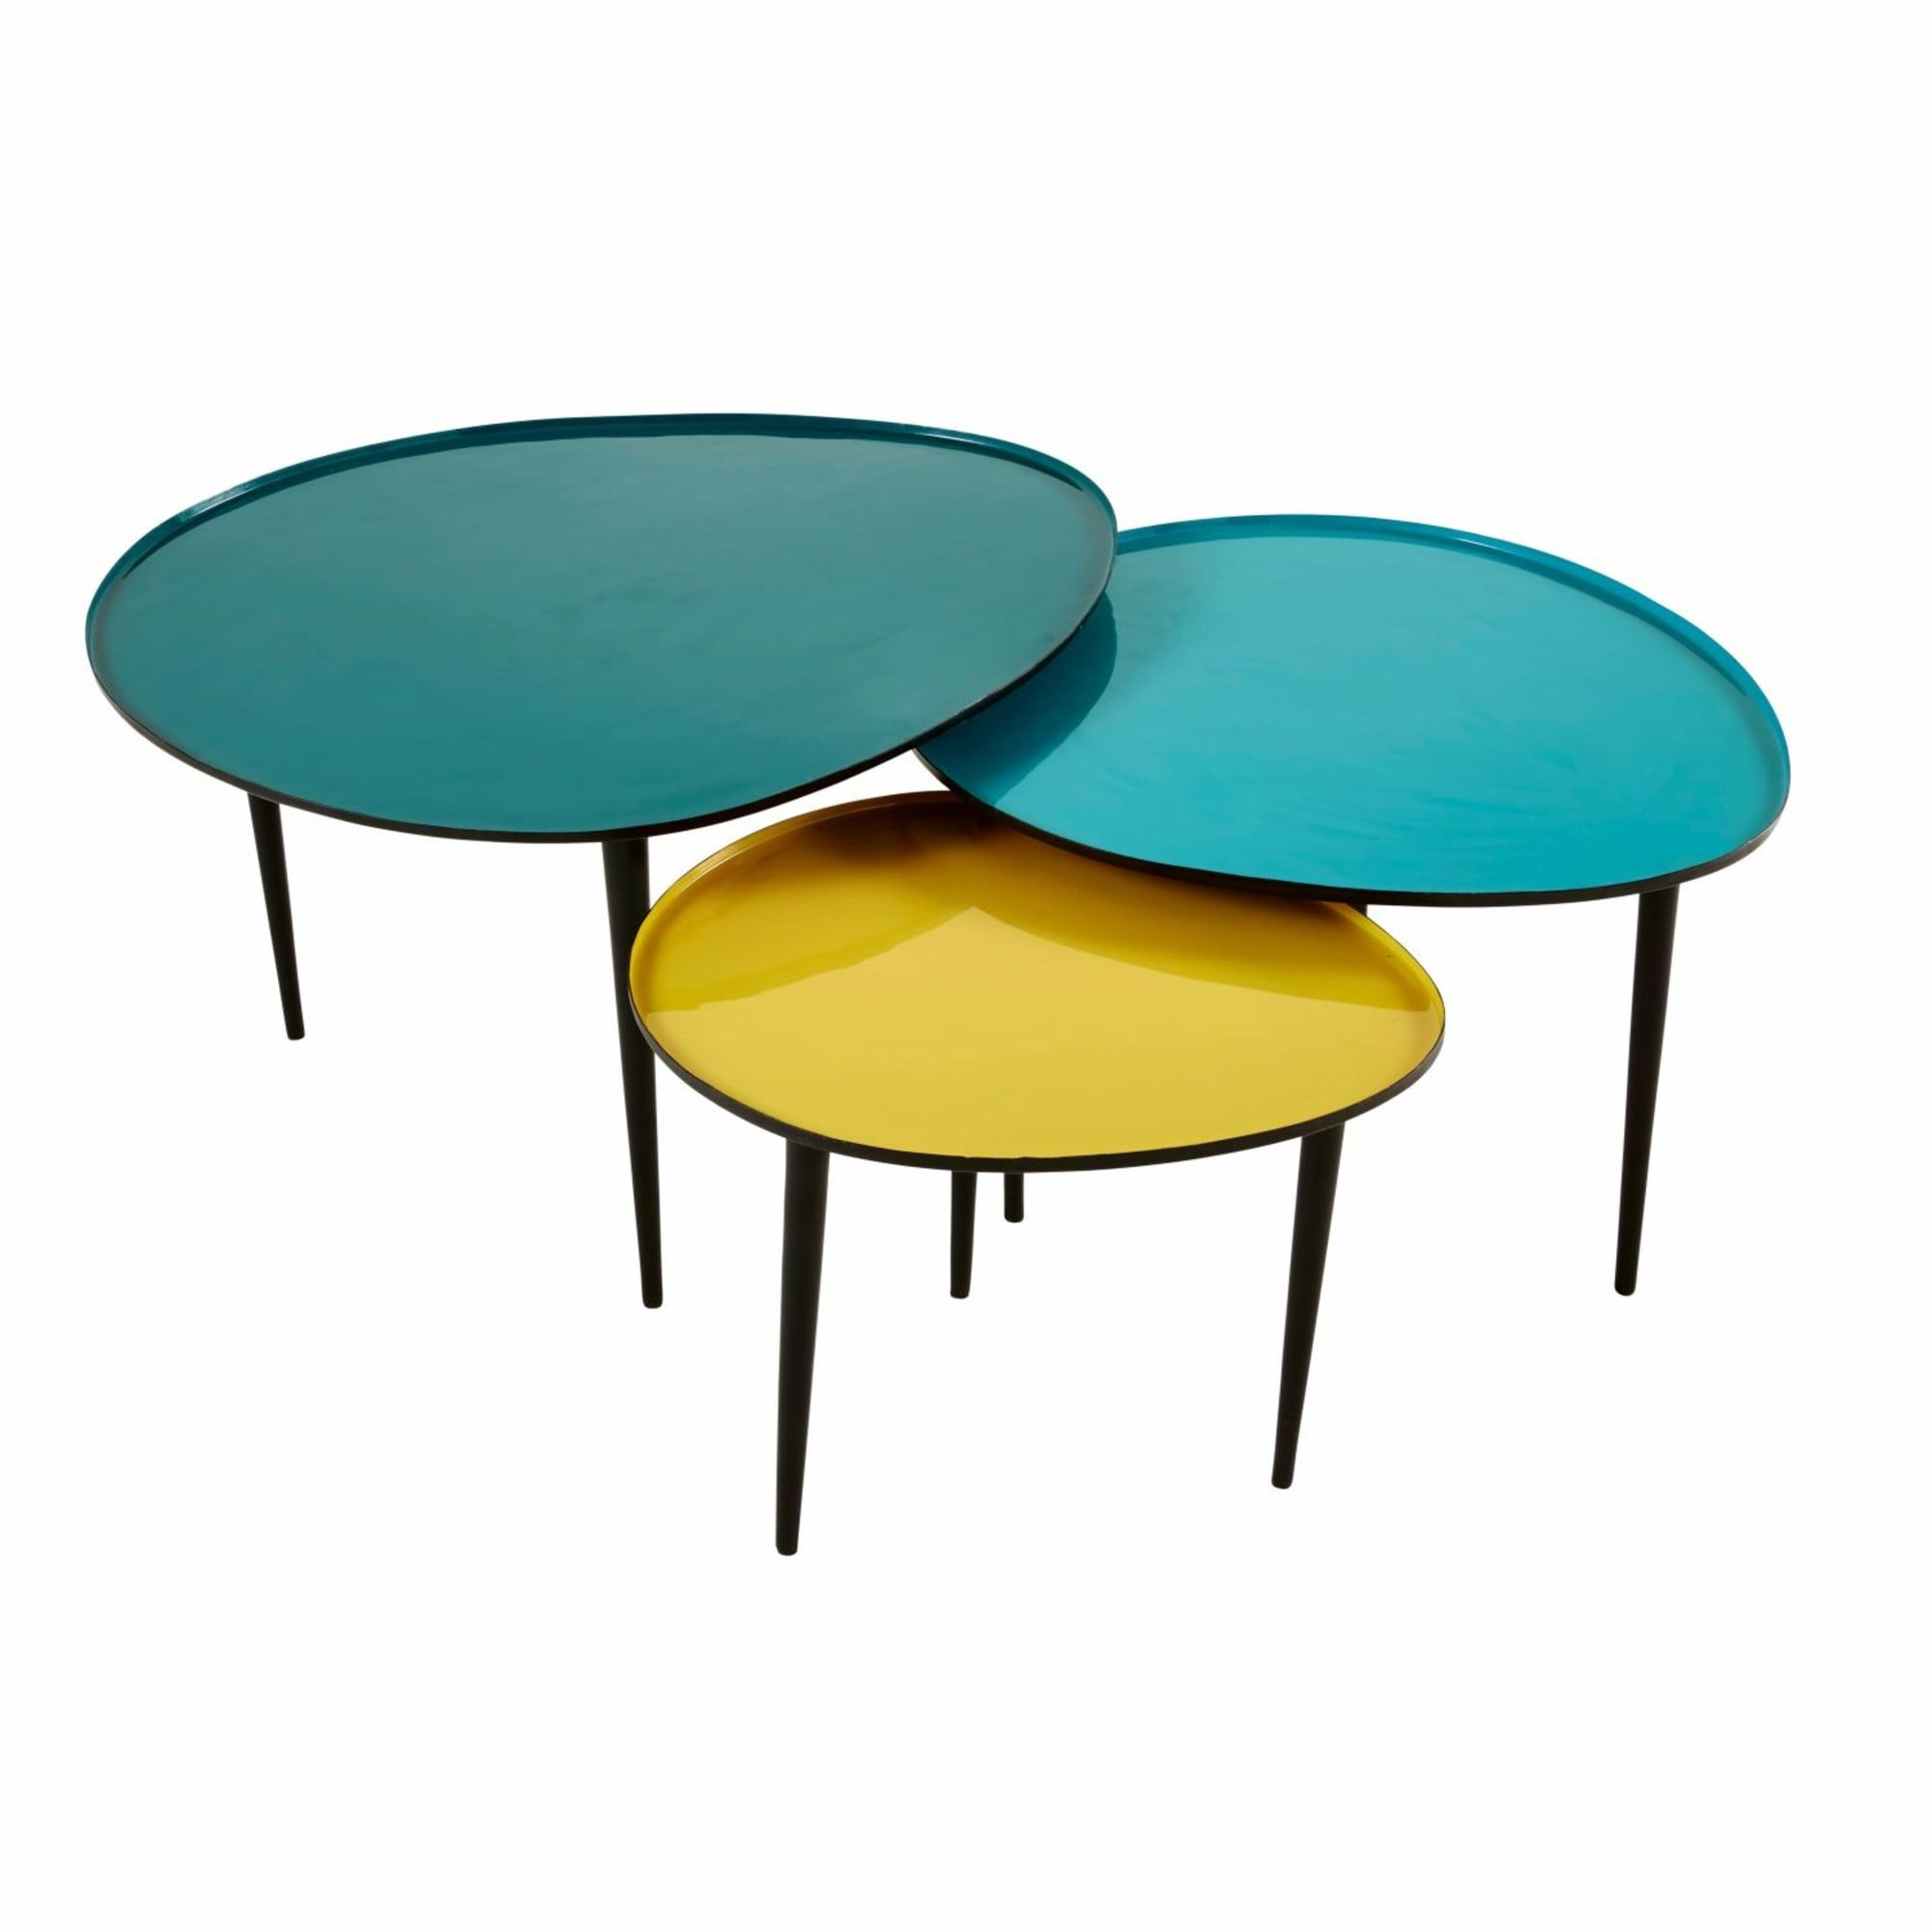 Tables Gigognes En Metal Laque Bleu Et Jaune Galet Tables Gigognes Table Basse Gigogne Table Basse